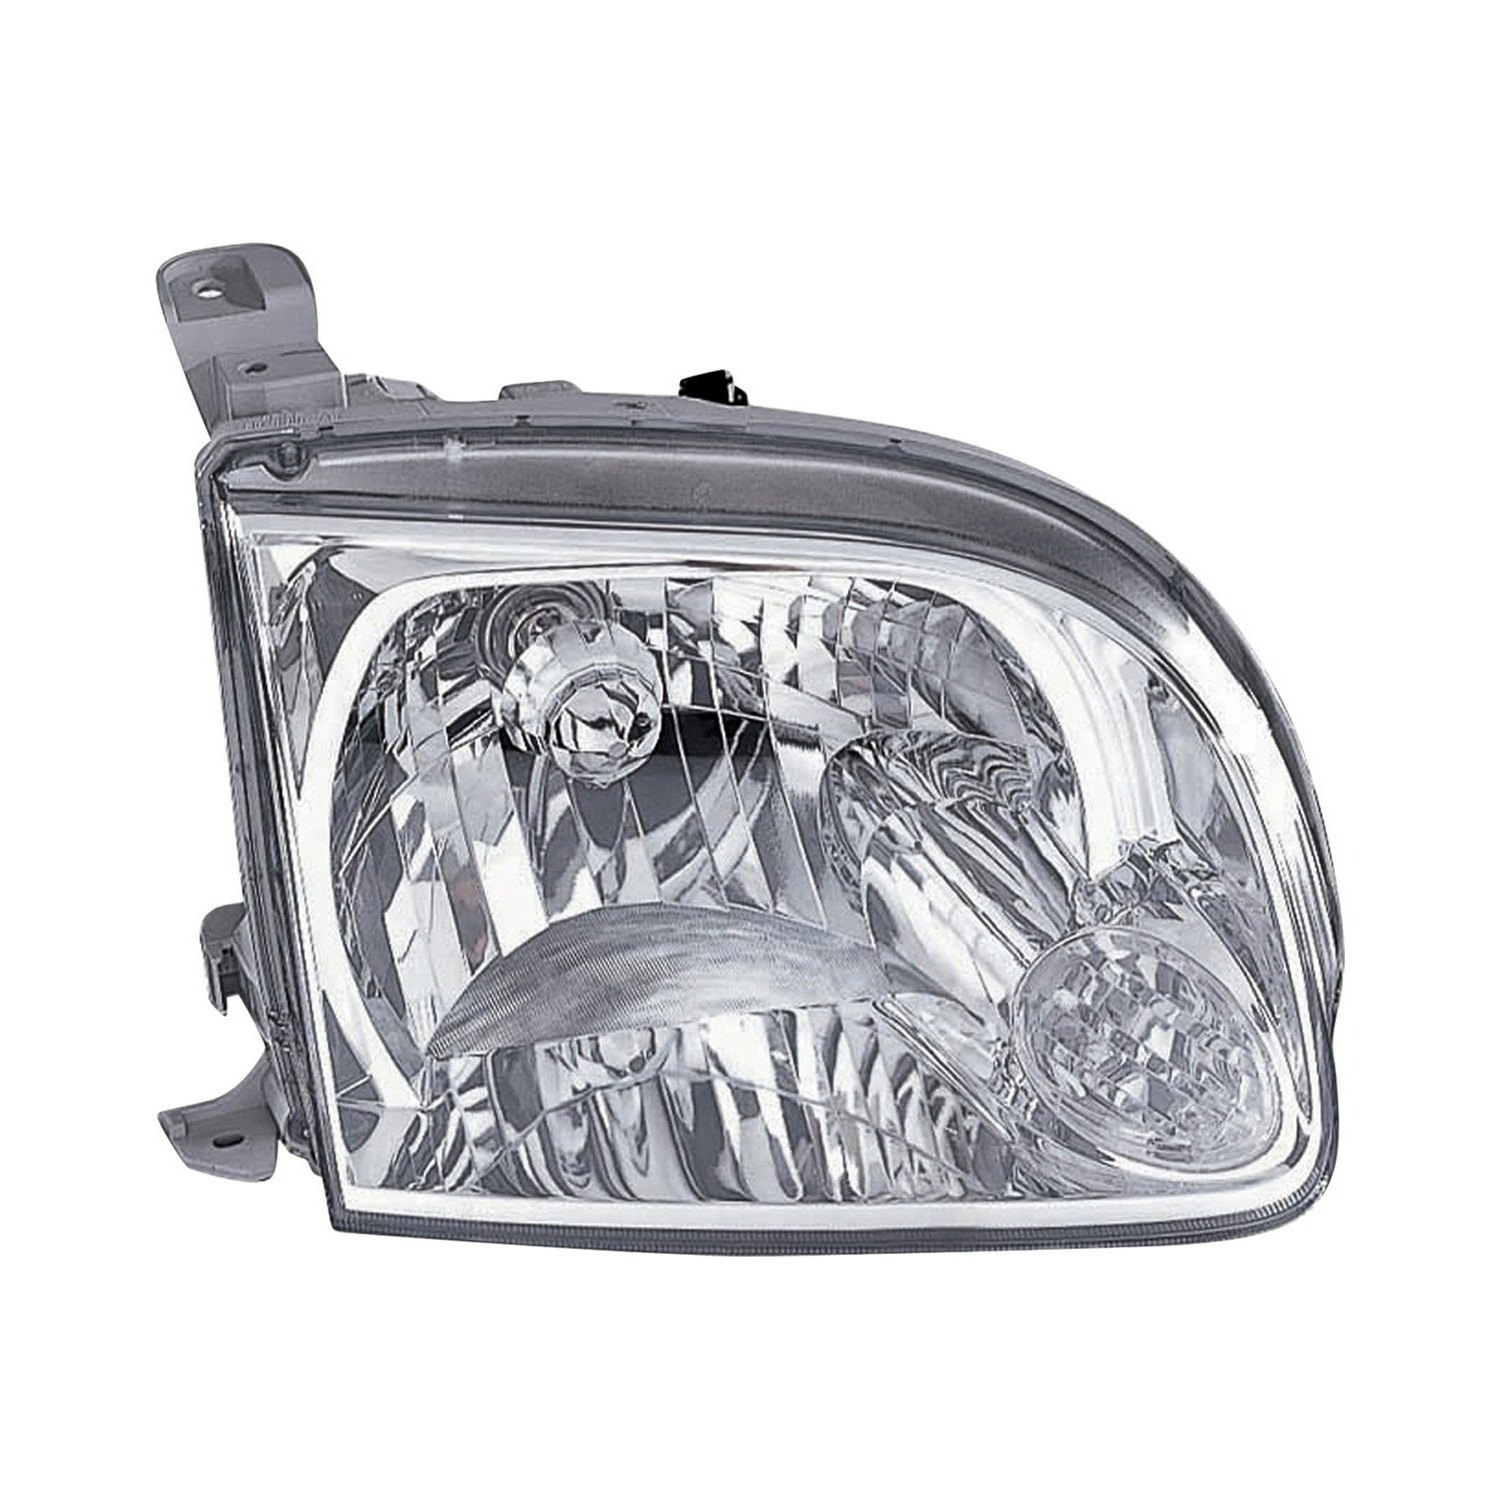 Replace Toyota Tundra 2005 2006 Replacement Headlight